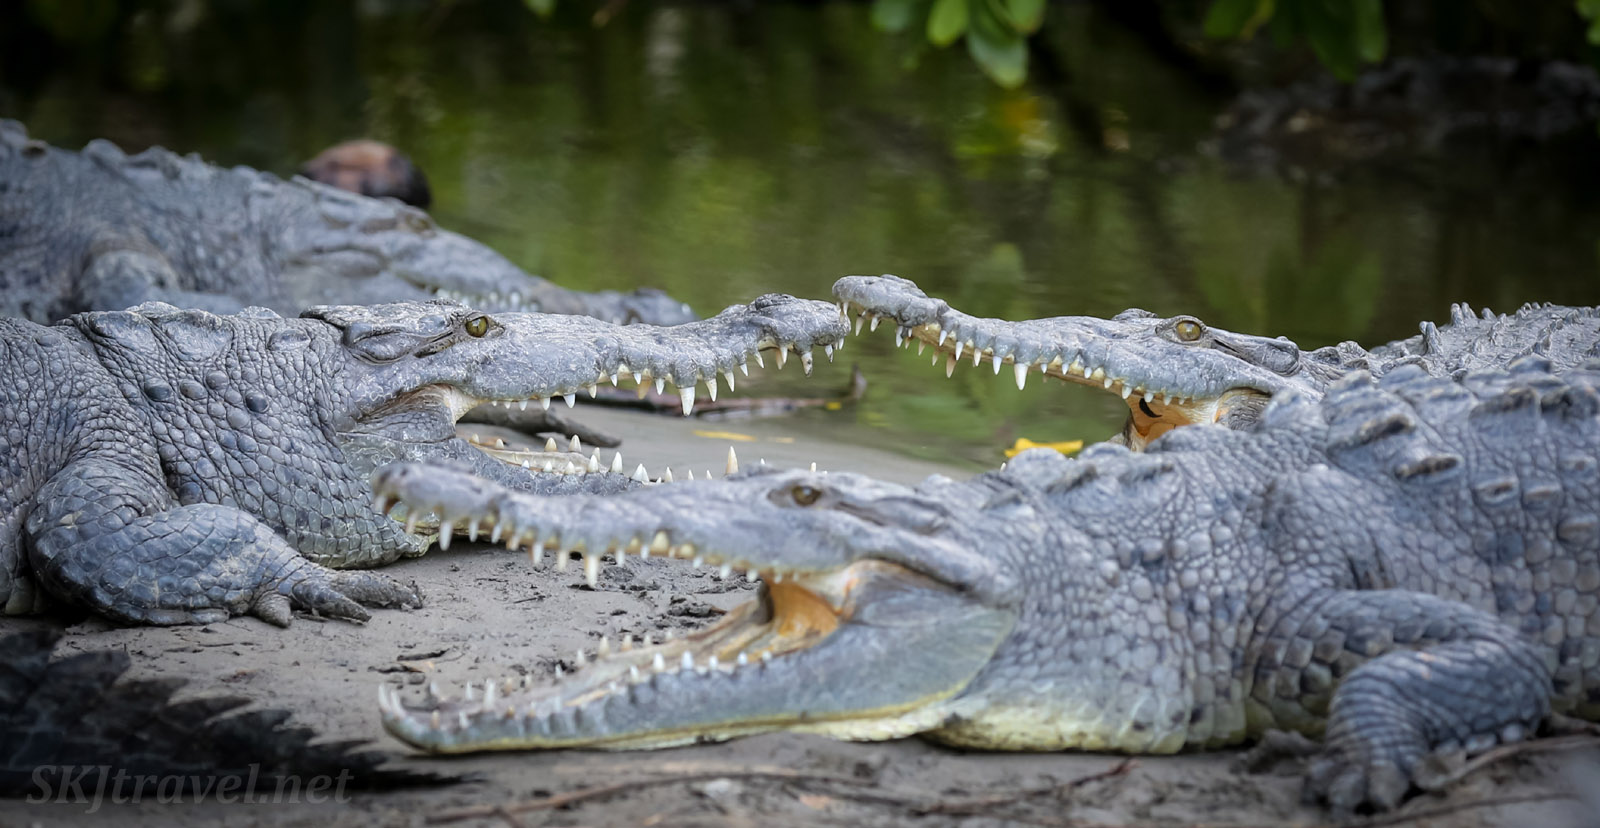 American crocodiles with mouths open showcasing their teeth. Popoyote Lagoon, Playa Linda, Ixtapa, Mexico.